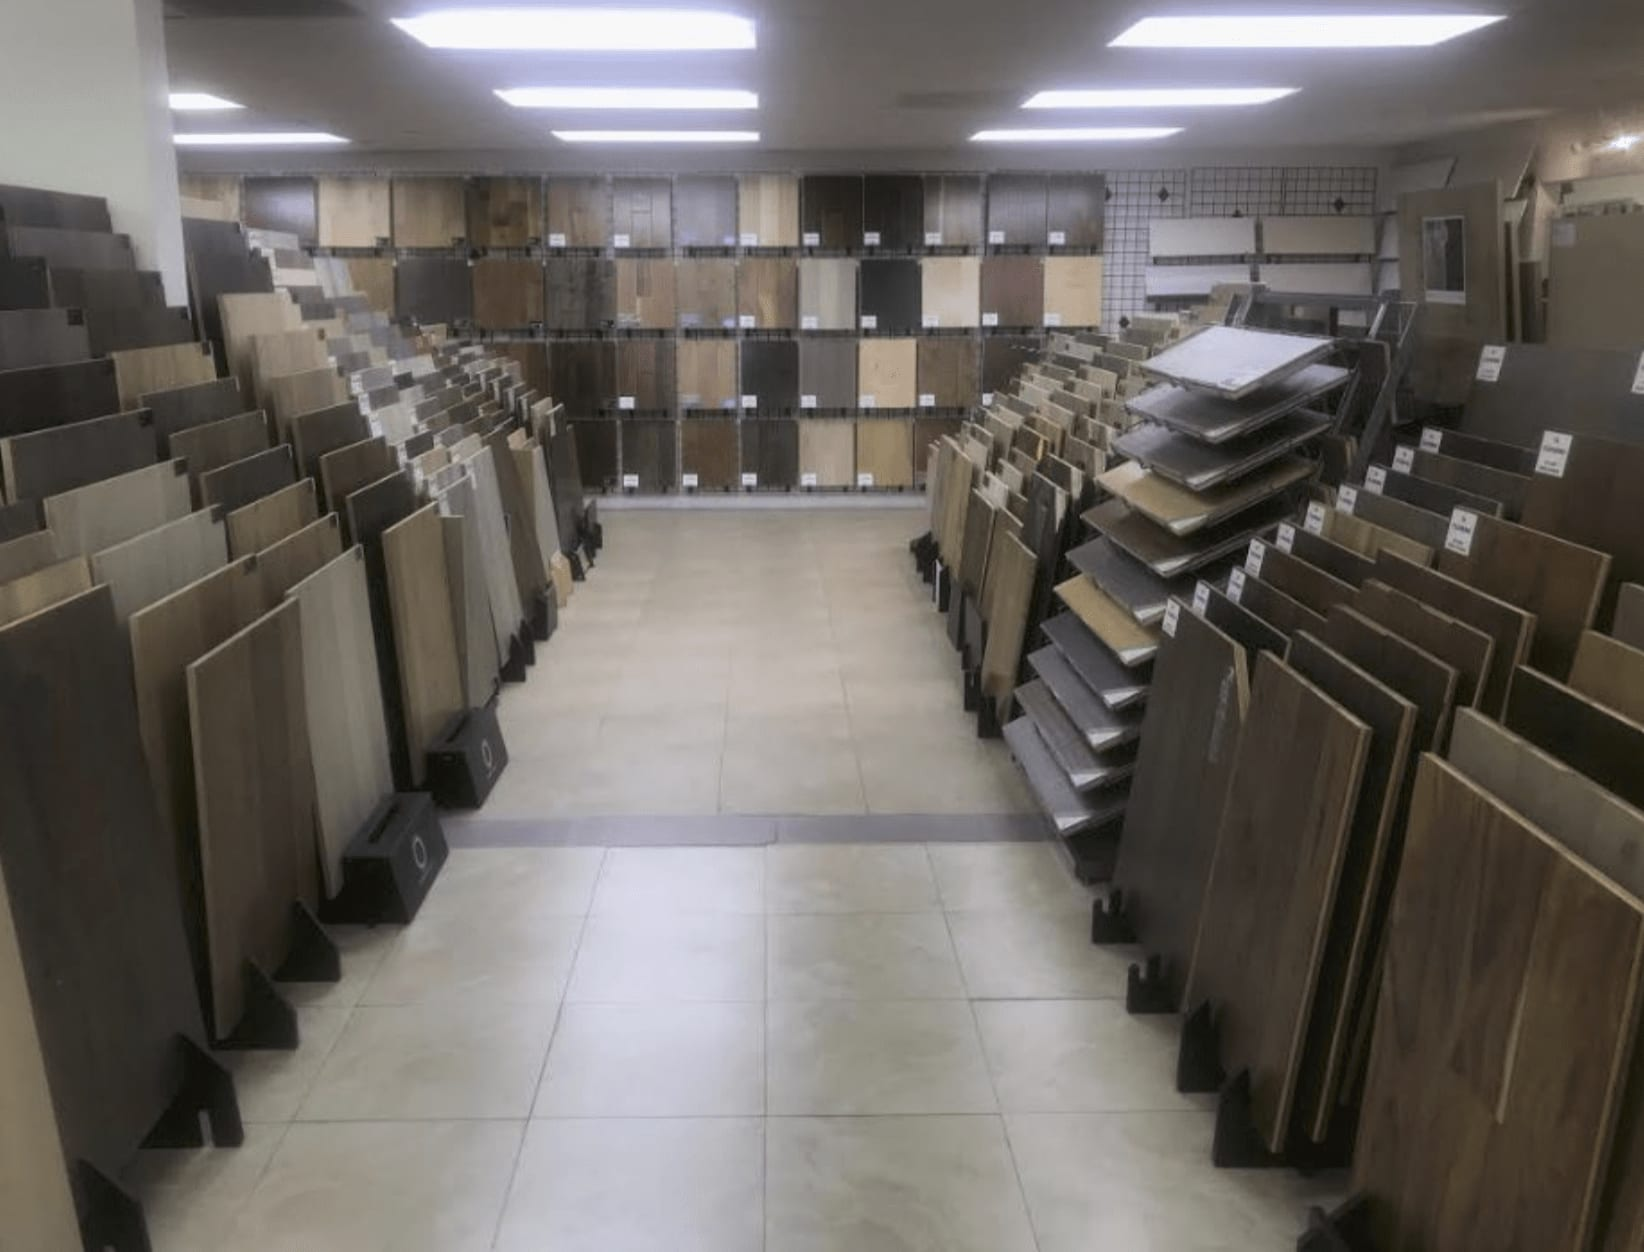 Walk through our selection at 55 Flooring in Anaheim, CA